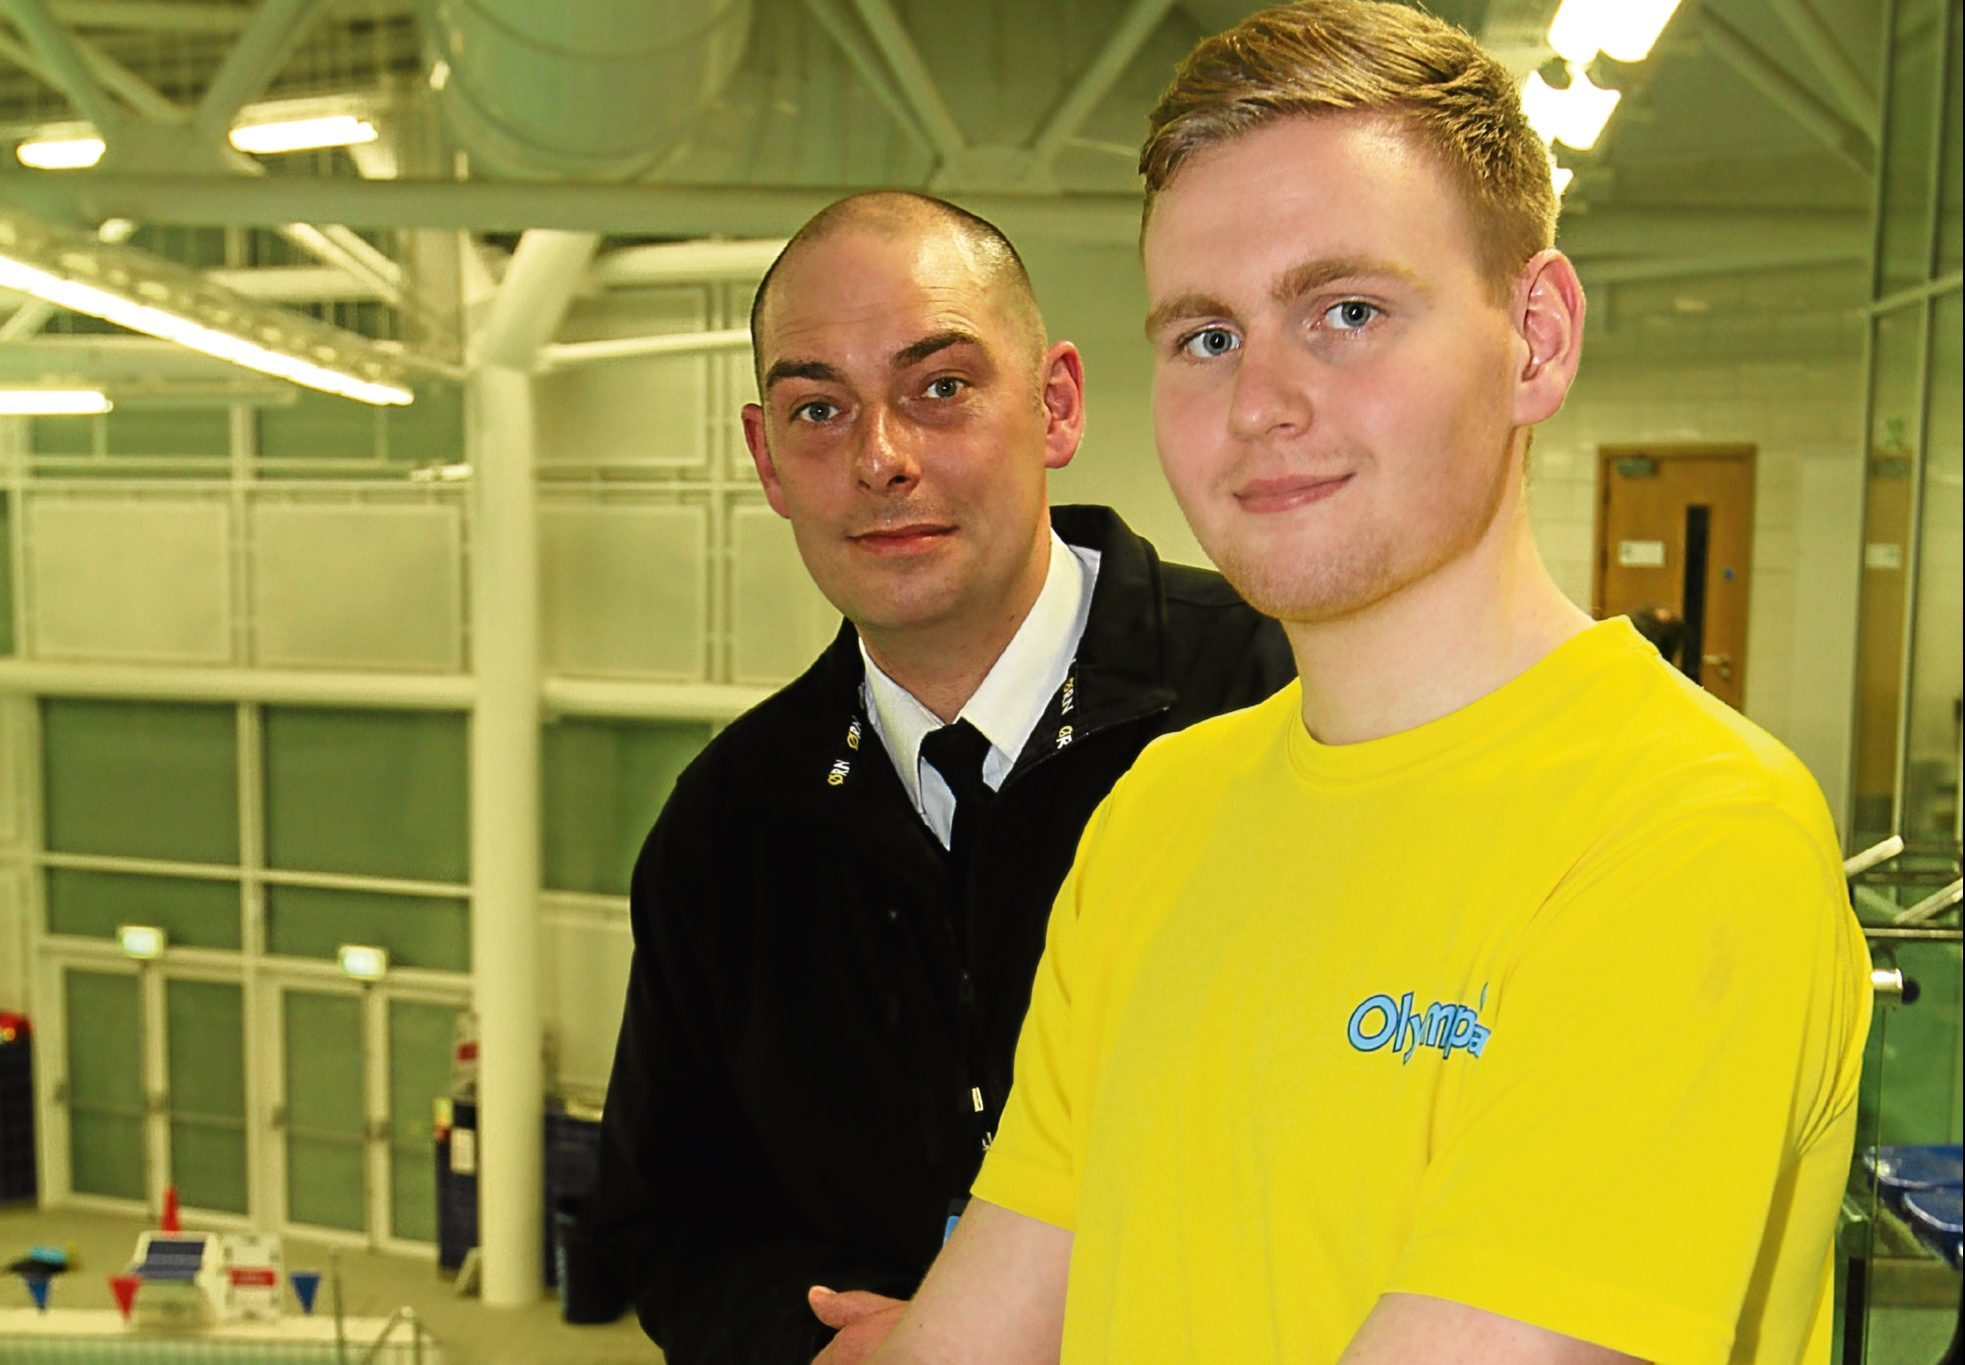 Shaun Simpson and lifeguard Duncan Johnston saved an unconscious teenager from drowning at the Olympia swimming pool in Dundee.